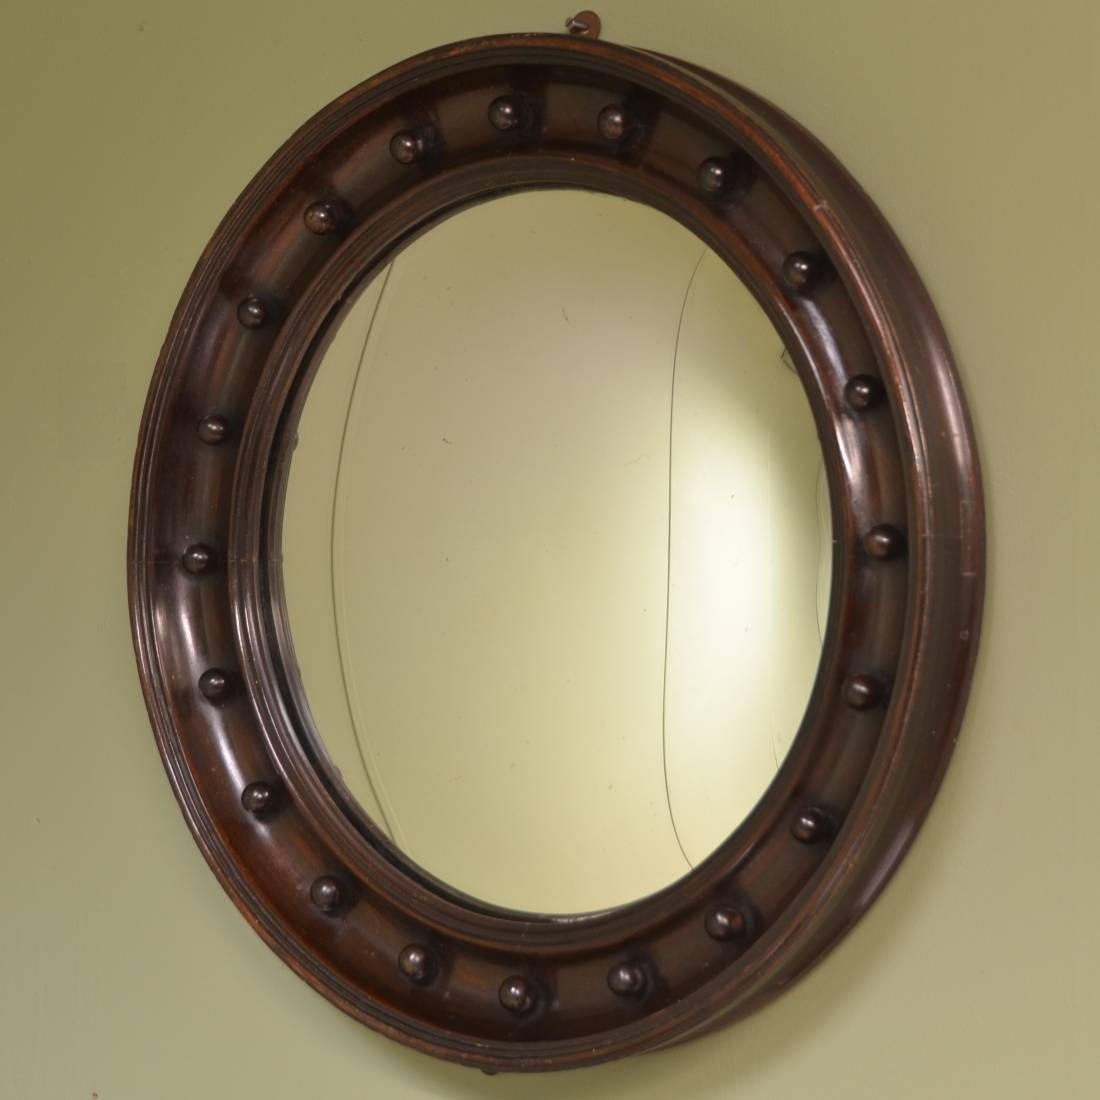 Decorative edwardian antique convex mirror antiques world for Convex mirror